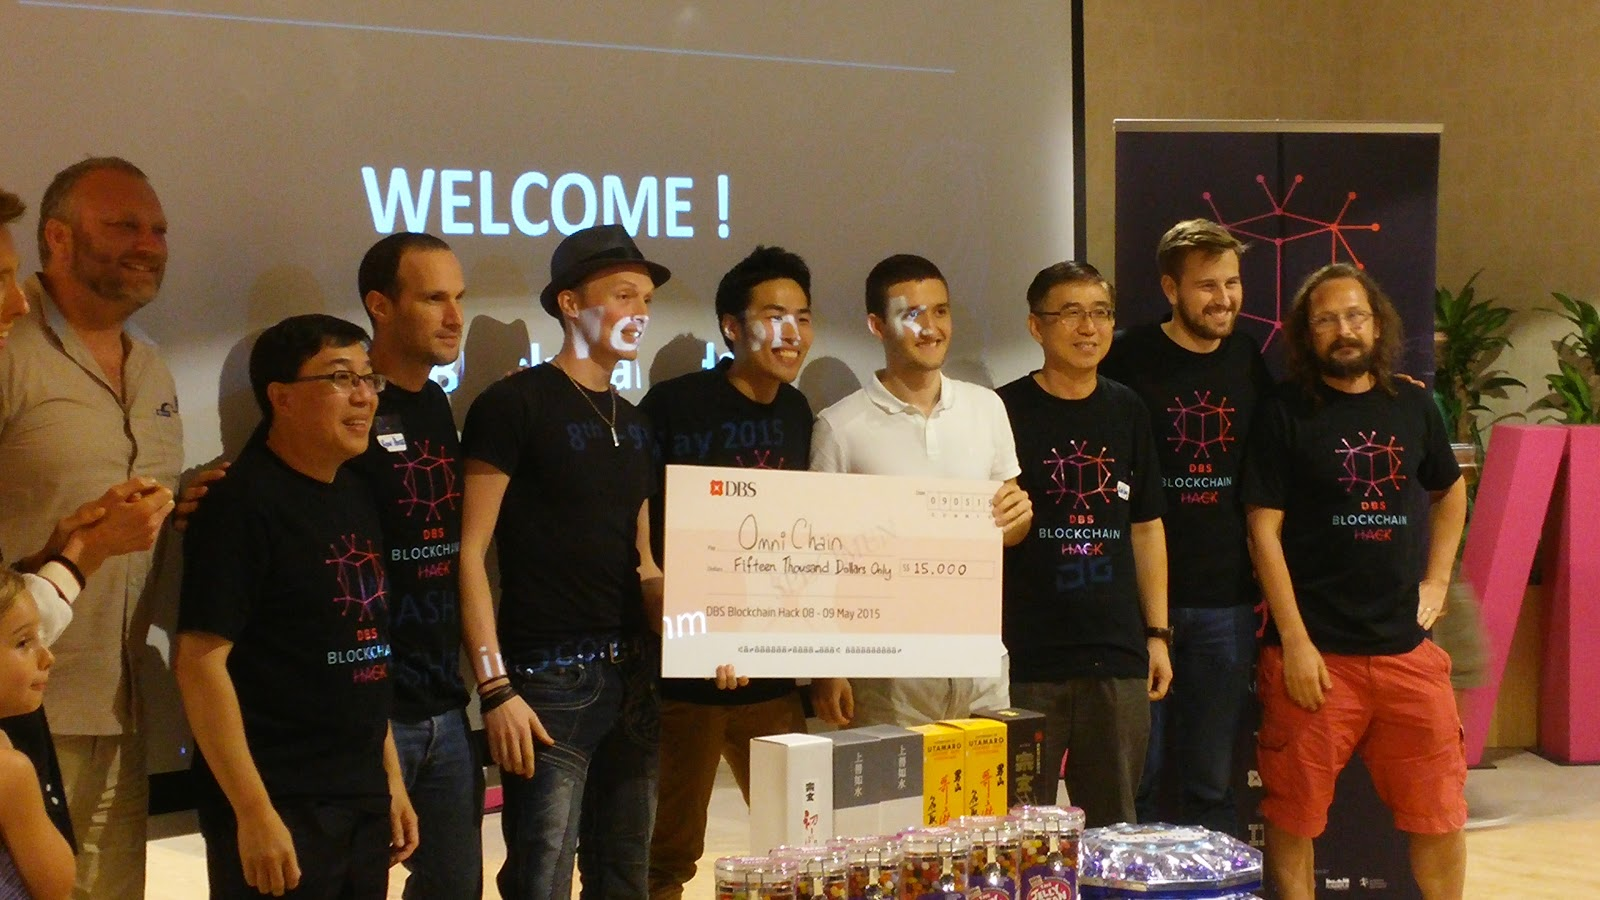 First place: OmniChain (accepting the 15.000$ prize).